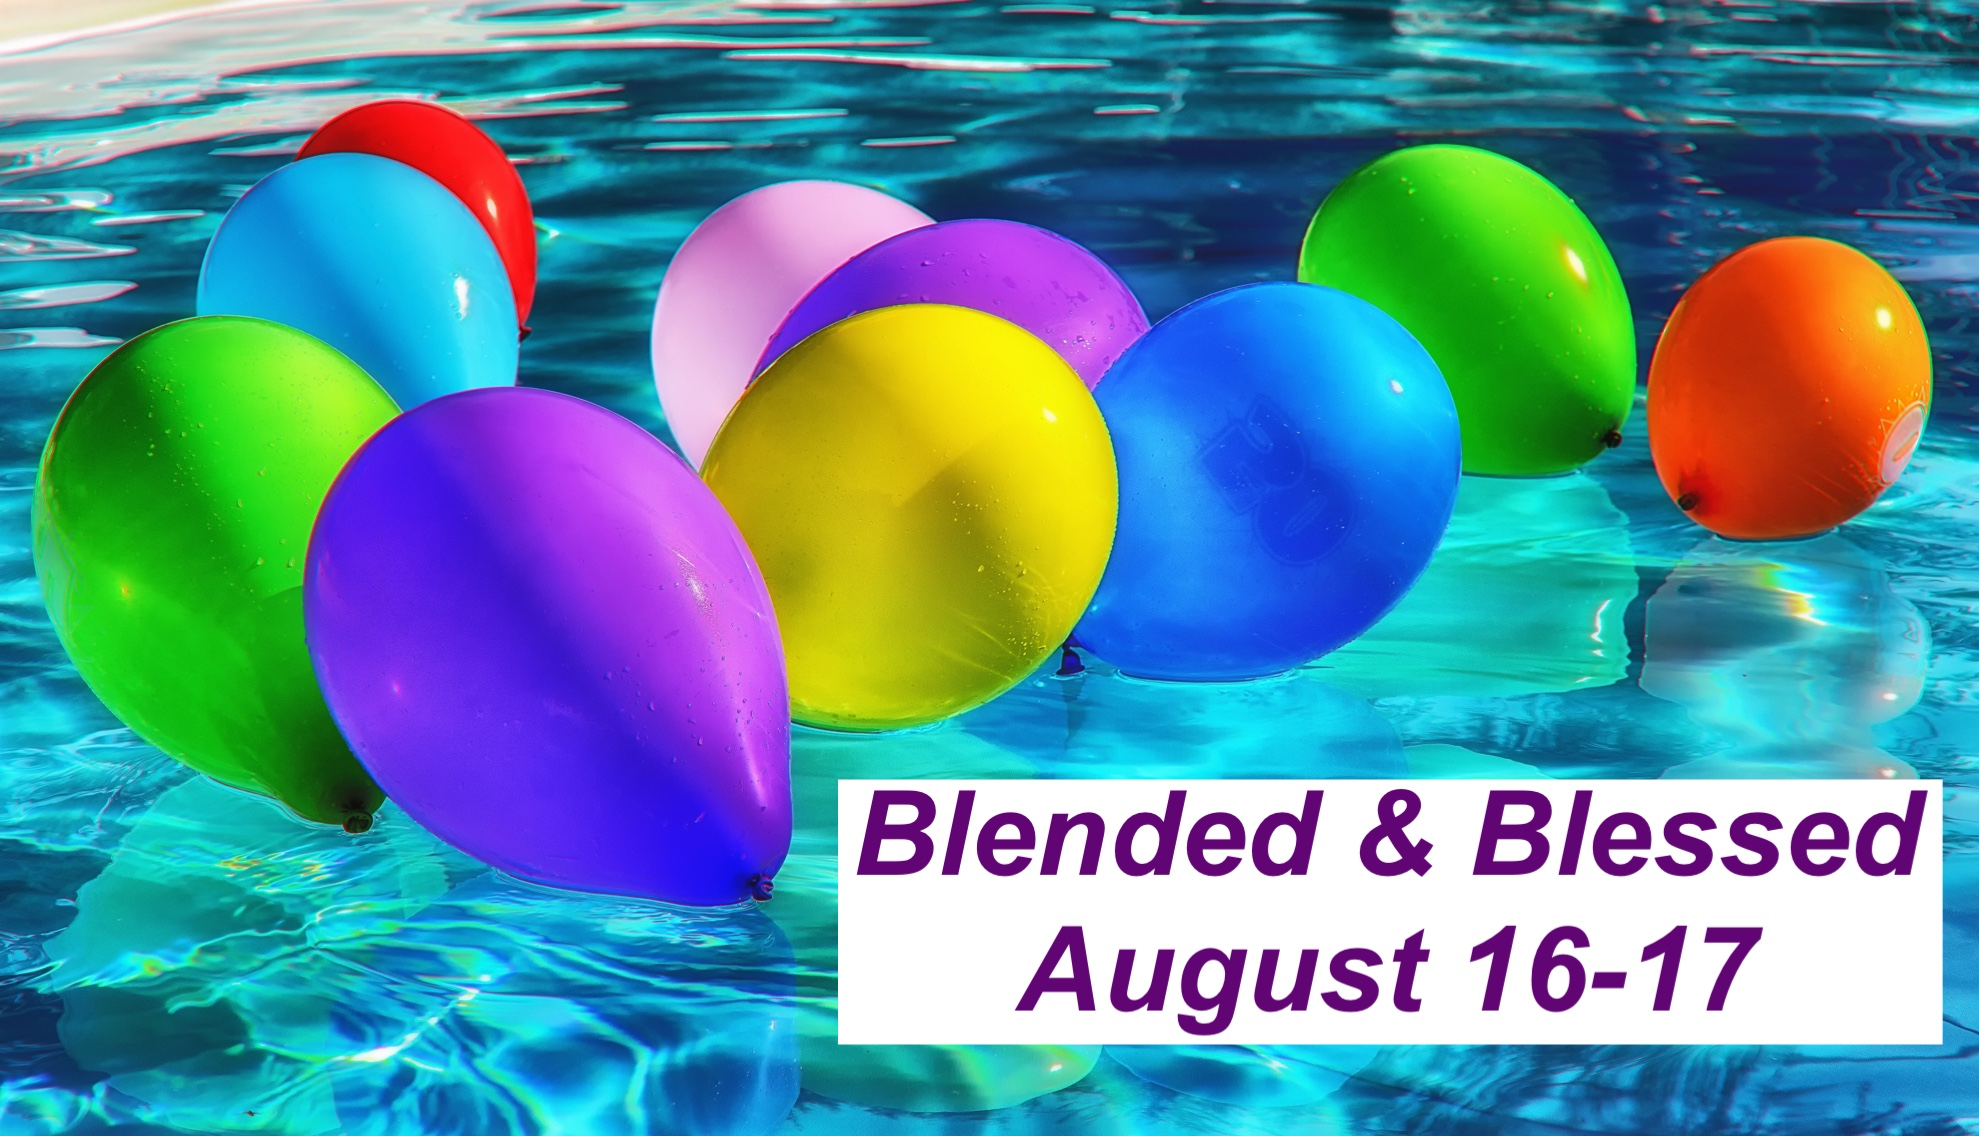 Blended & Blessed Balloons.jpg